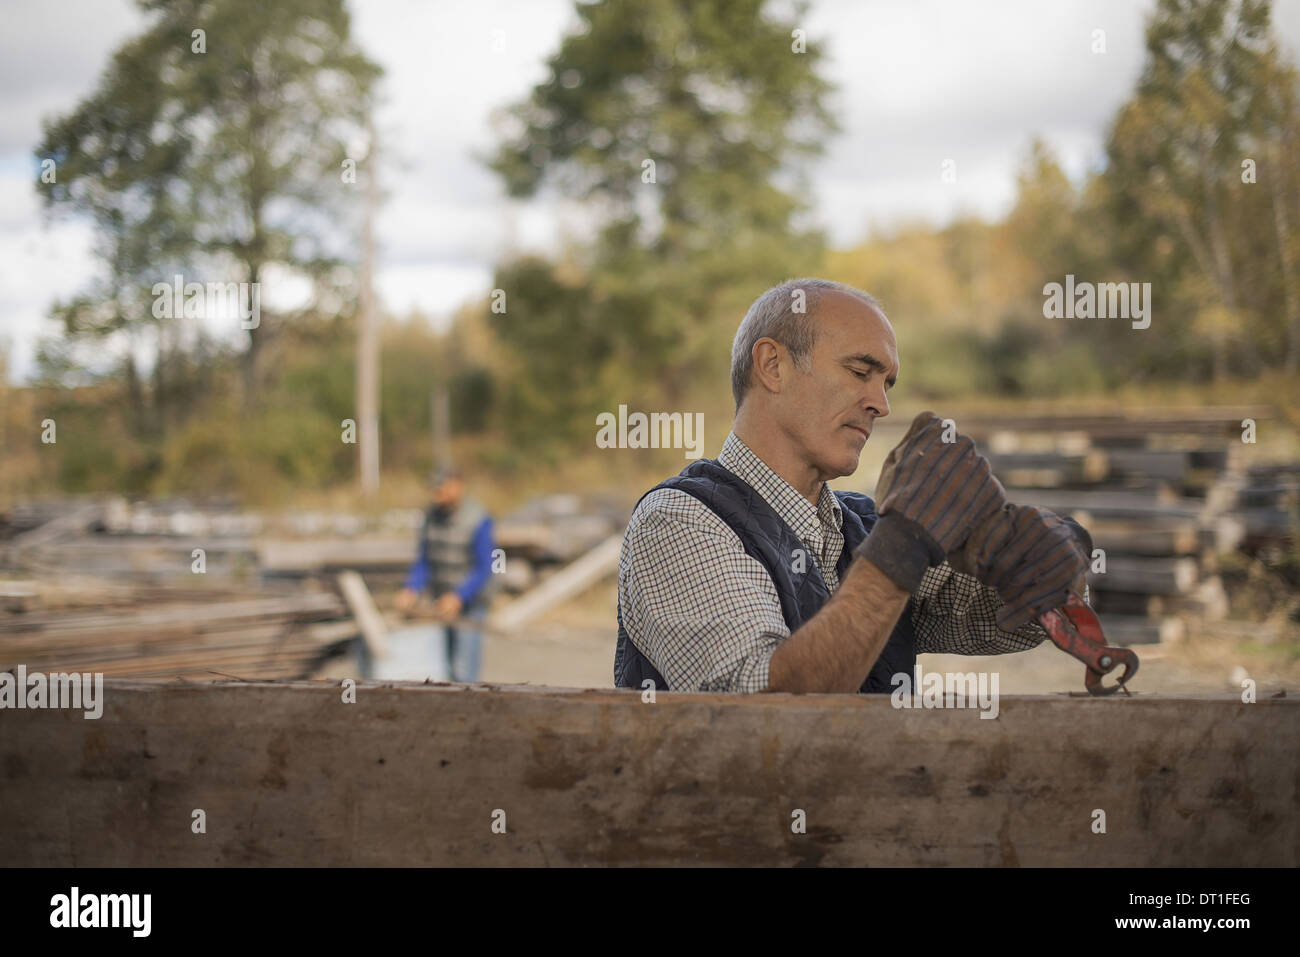 Two men working in a reclaimed timber yard One using a tool to remove metals from a reclaimed piece of timber - Stock Image